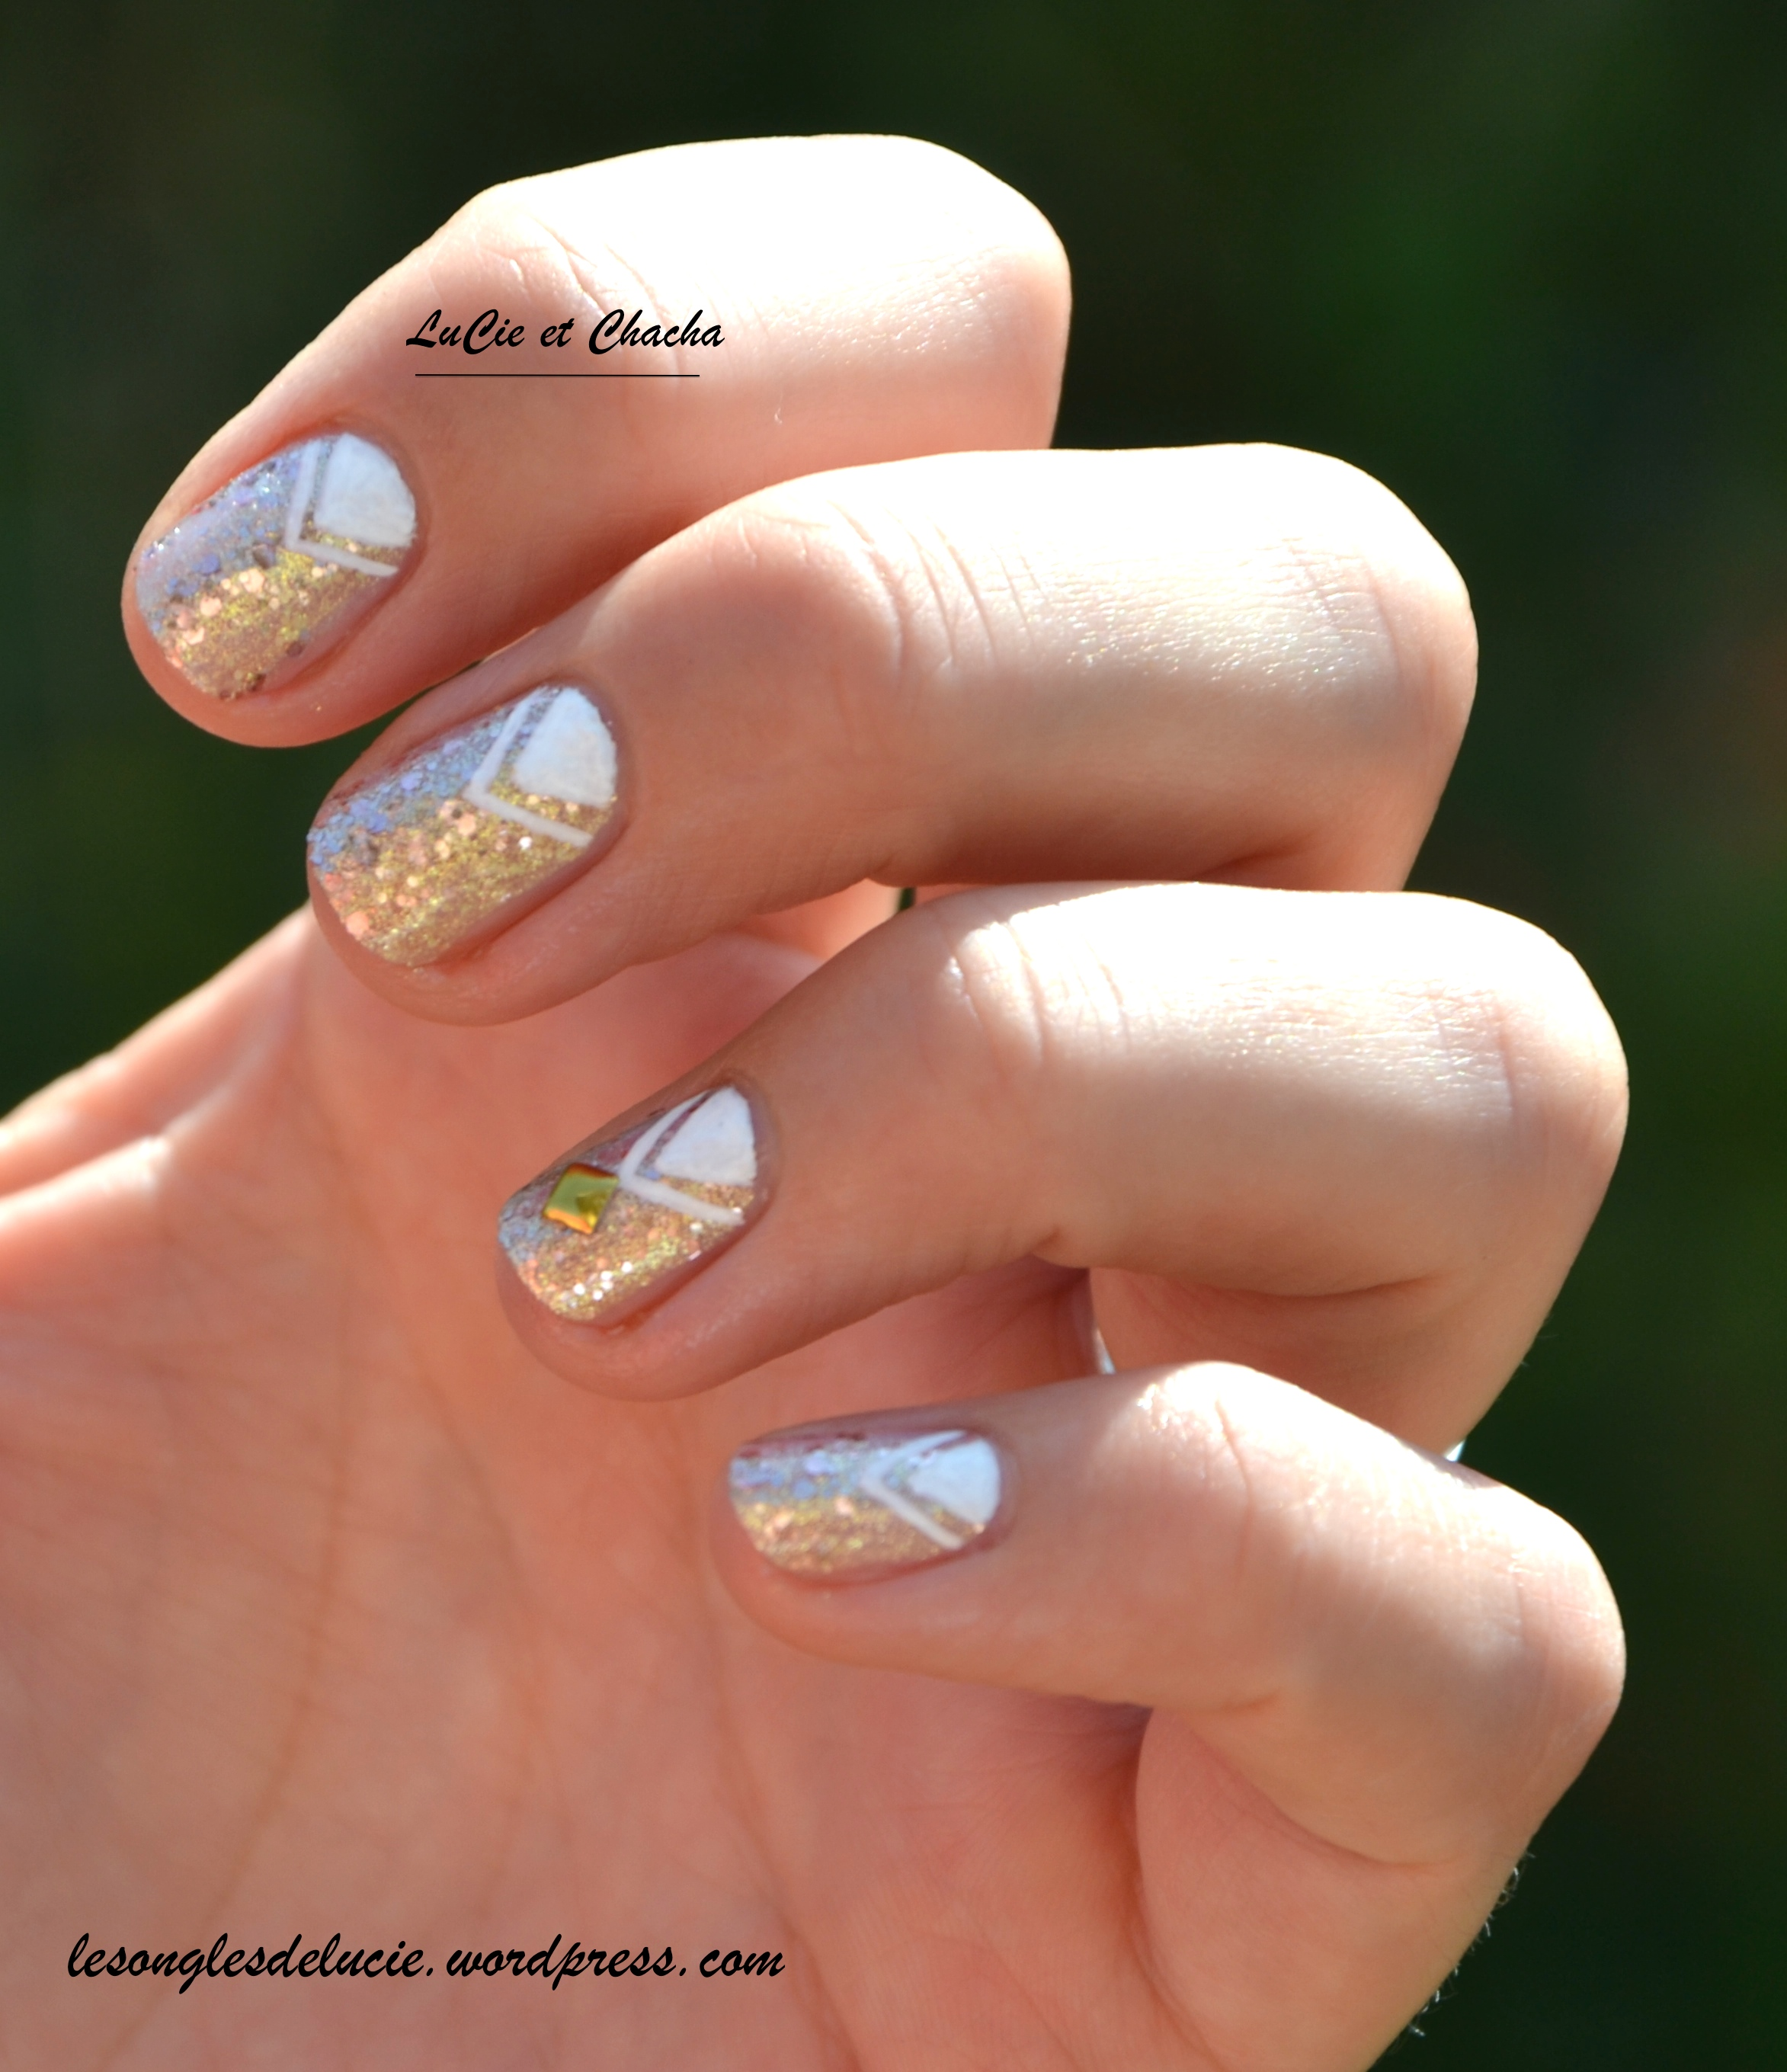 Nail Art Billerica Ma: Les Ongles De Lucie